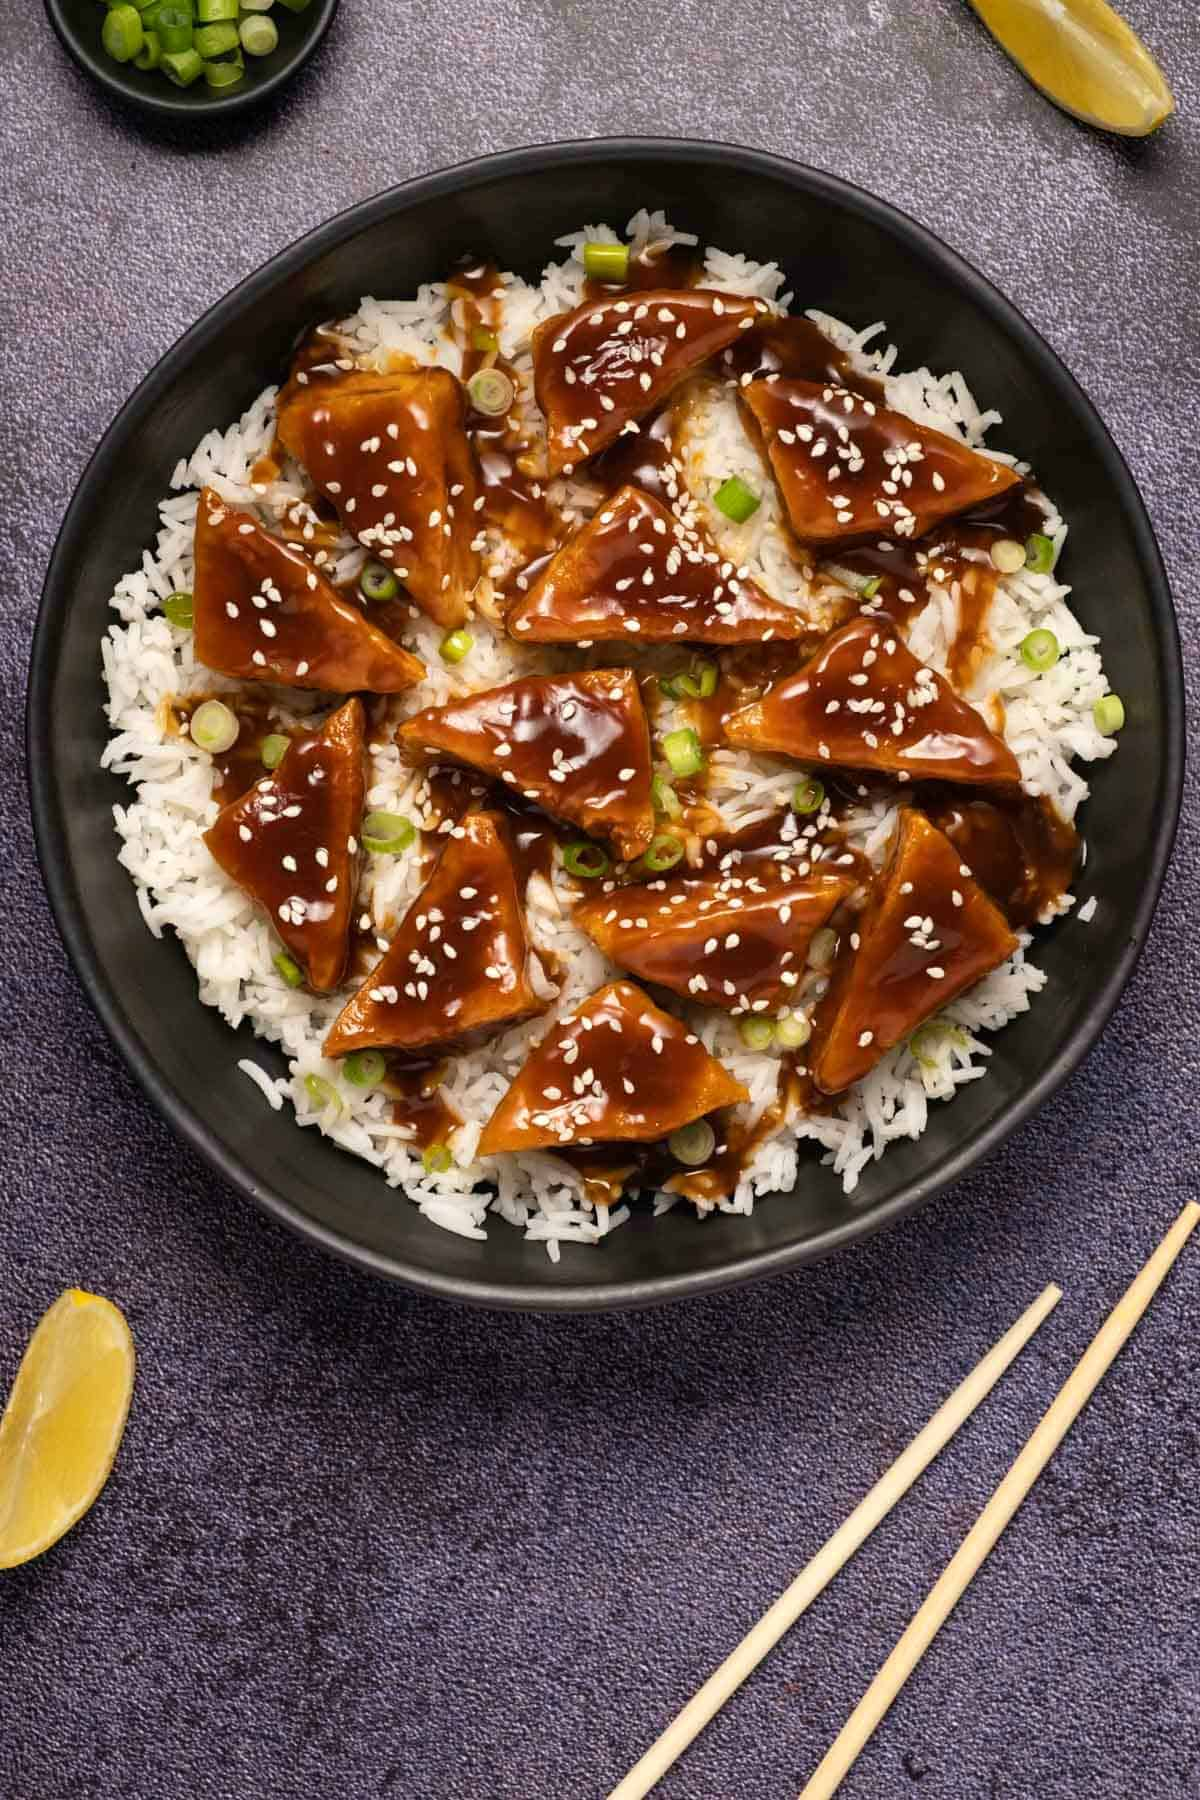 Teriyaki tofu with sesame seeds, chopped spring onions and rice in a black bowl.